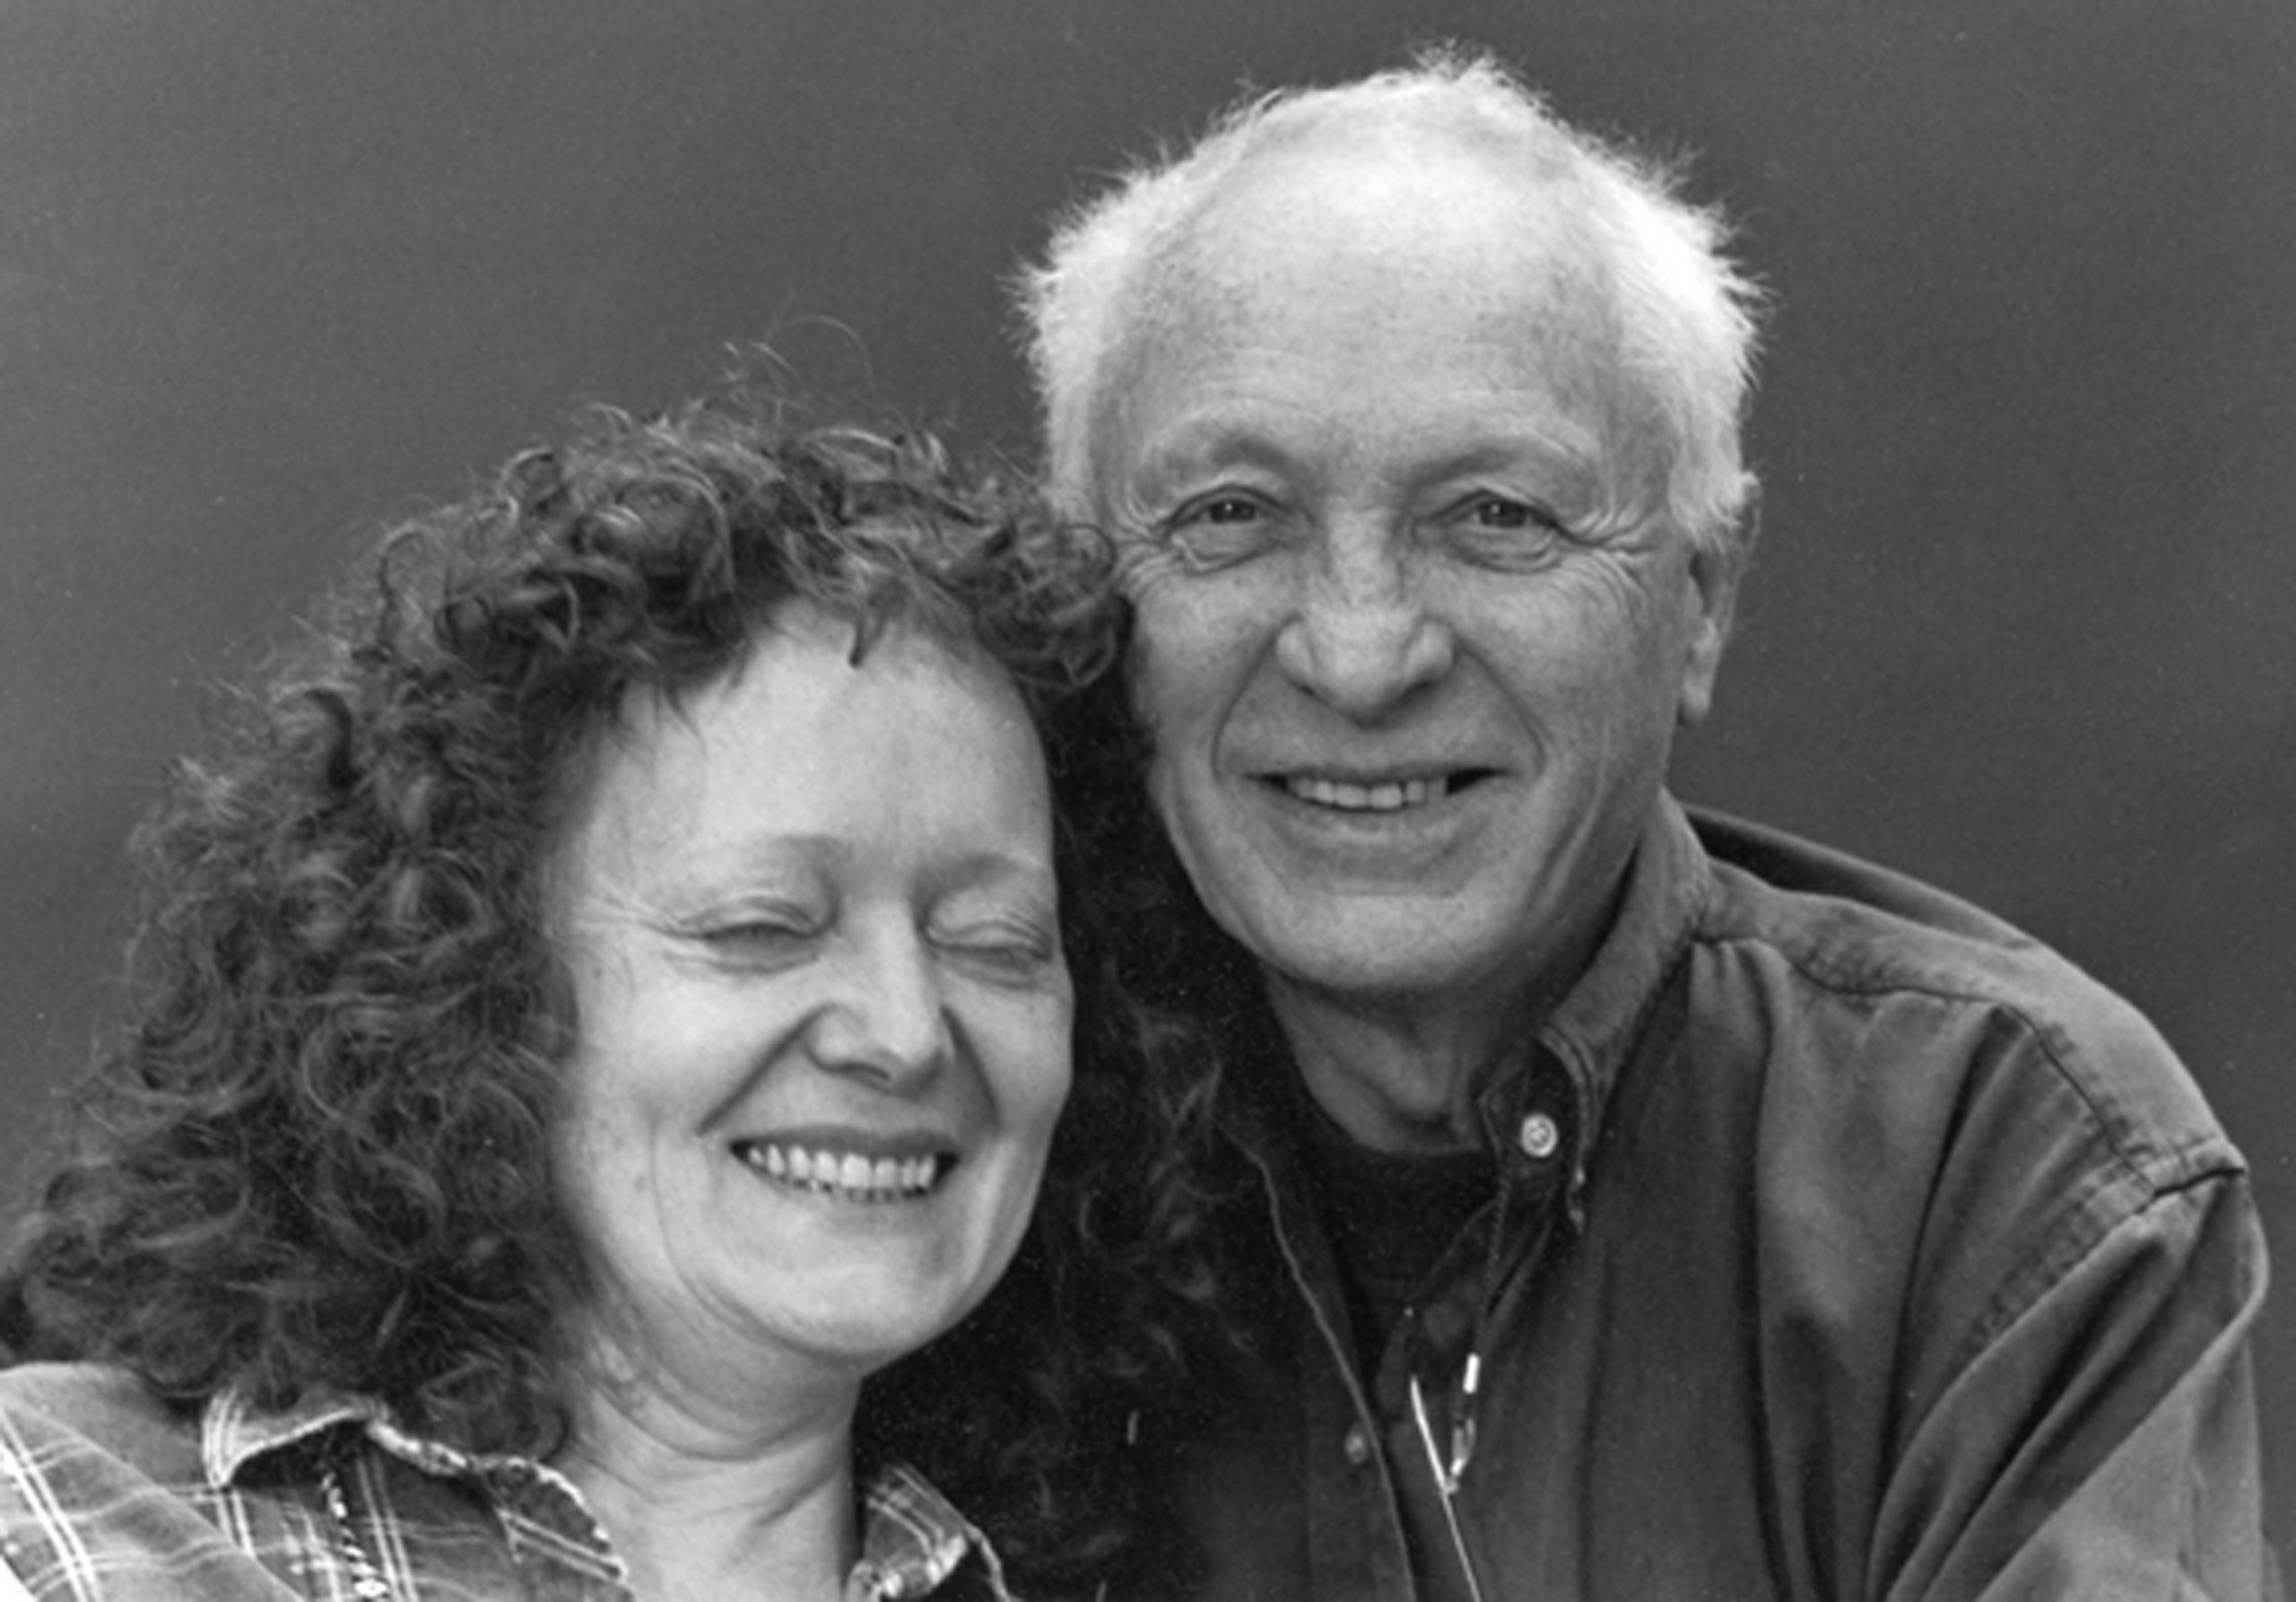 Undated: Jürgen Schadeberg with his wife Claudia. (Photograph courtesy of the Jürgen Schadeberg estate)